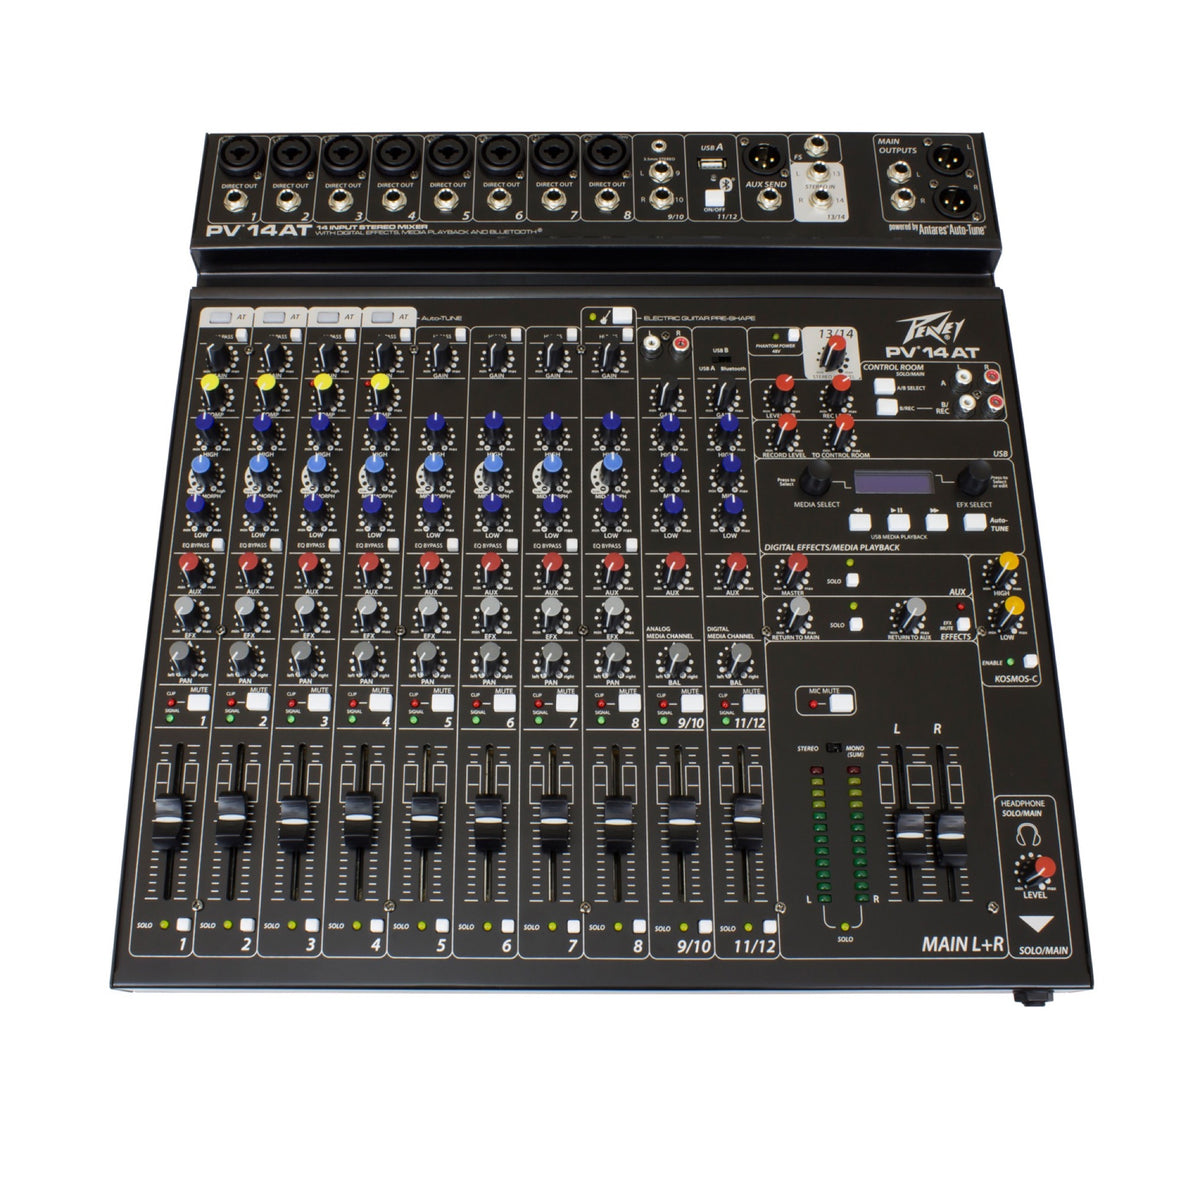 Peavey PV-14AT Stereo Mixer with Auto-Tune, 14-Channel